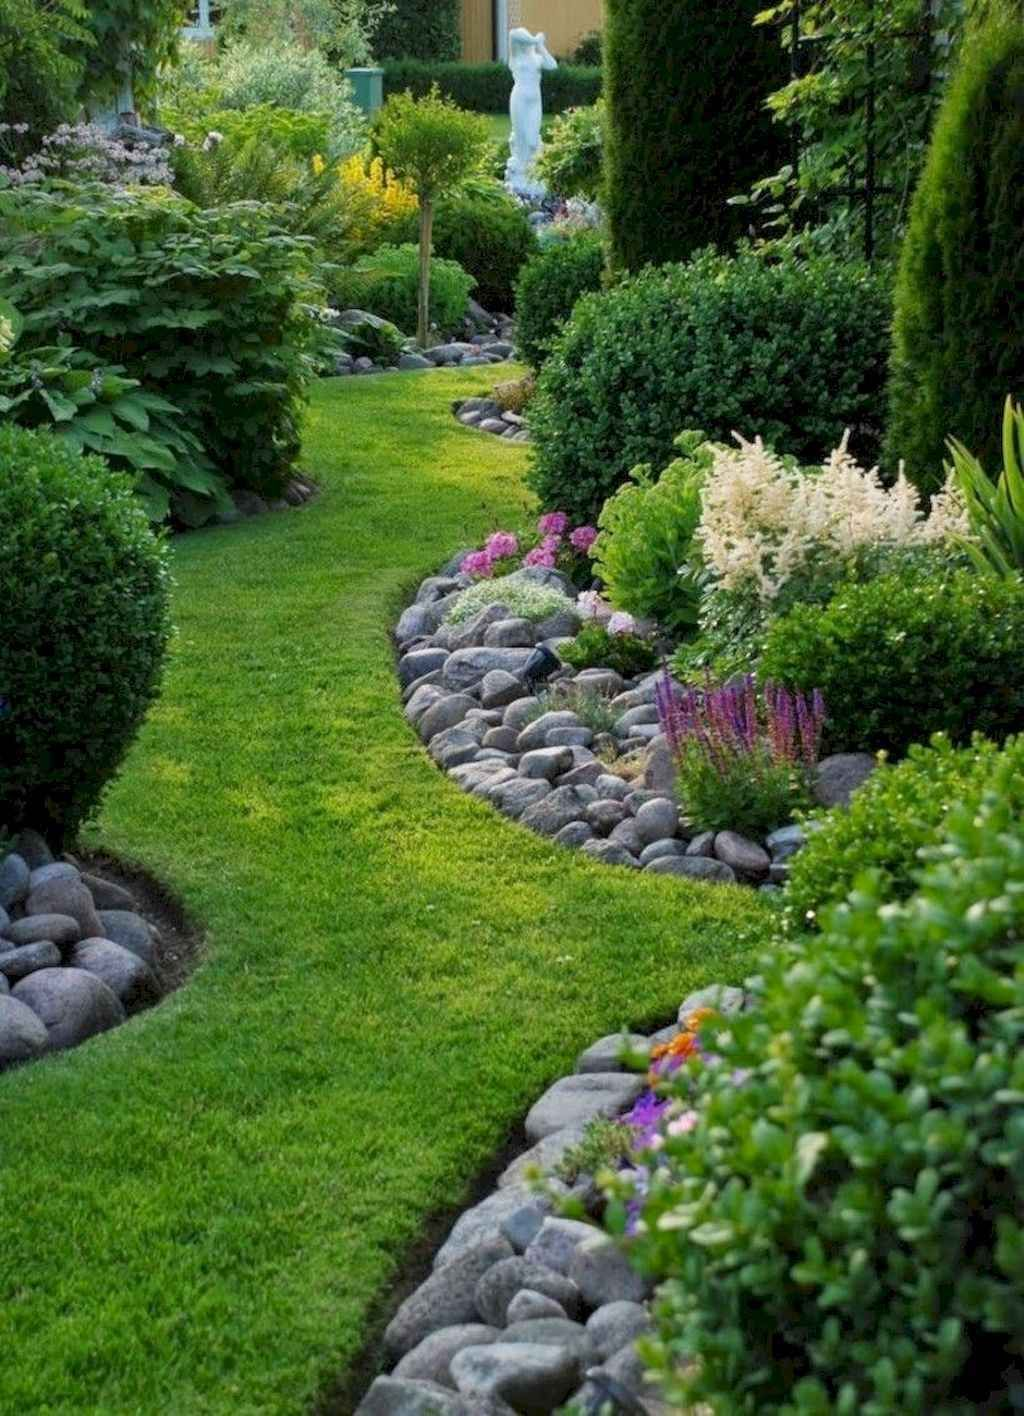 80 beautiful front yard landscaping ideas front yard on front yard landscaping ideas id=99530